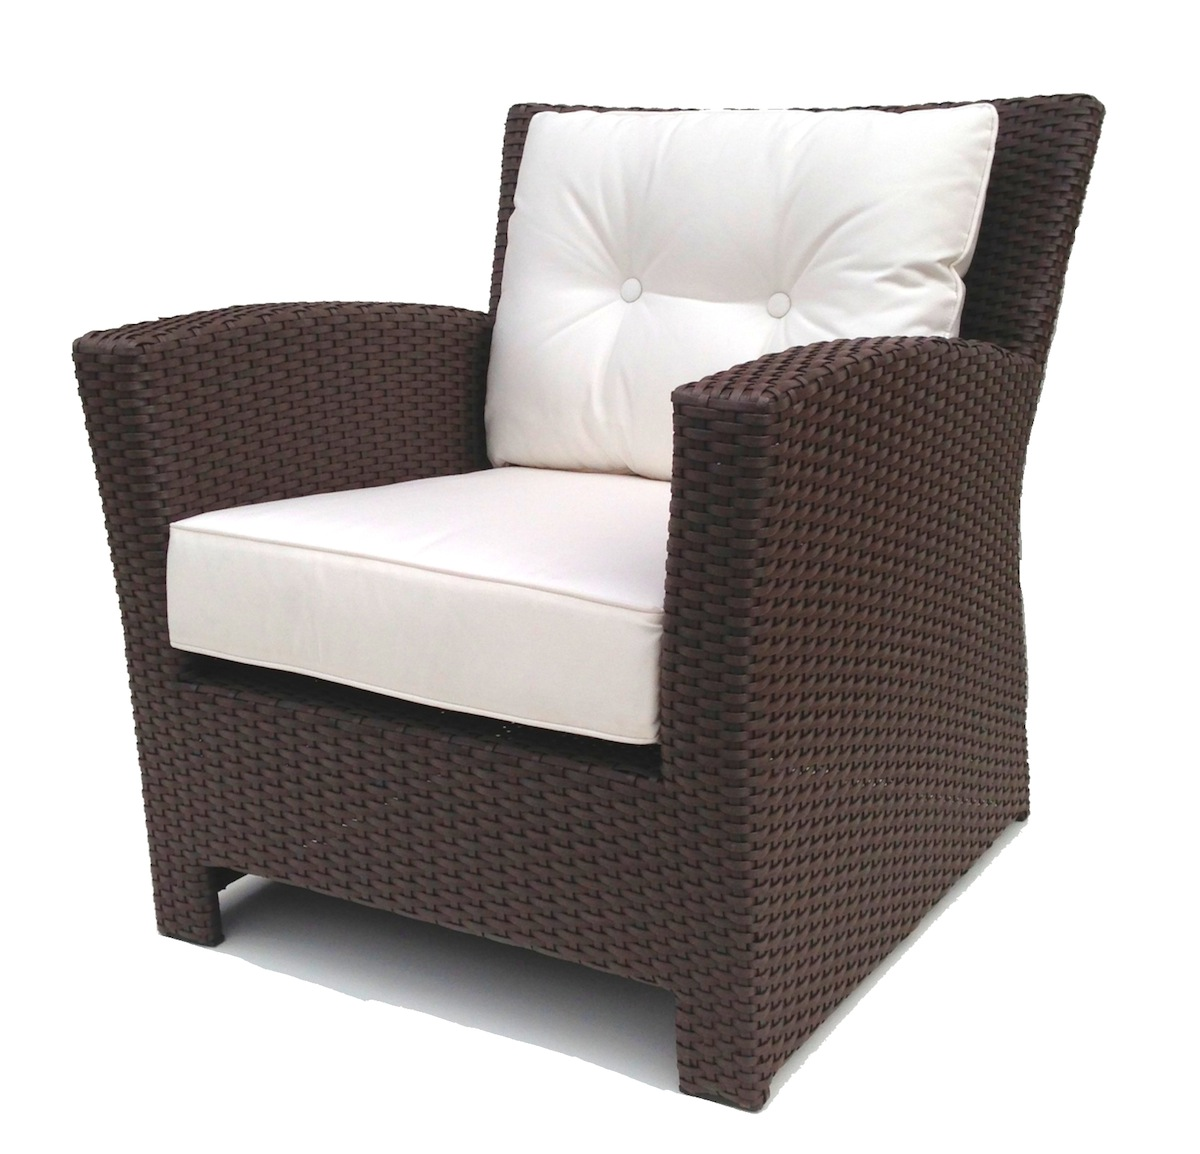 Used outdoor furniture used wicker patio furniture best for Outdoor furniture wicker